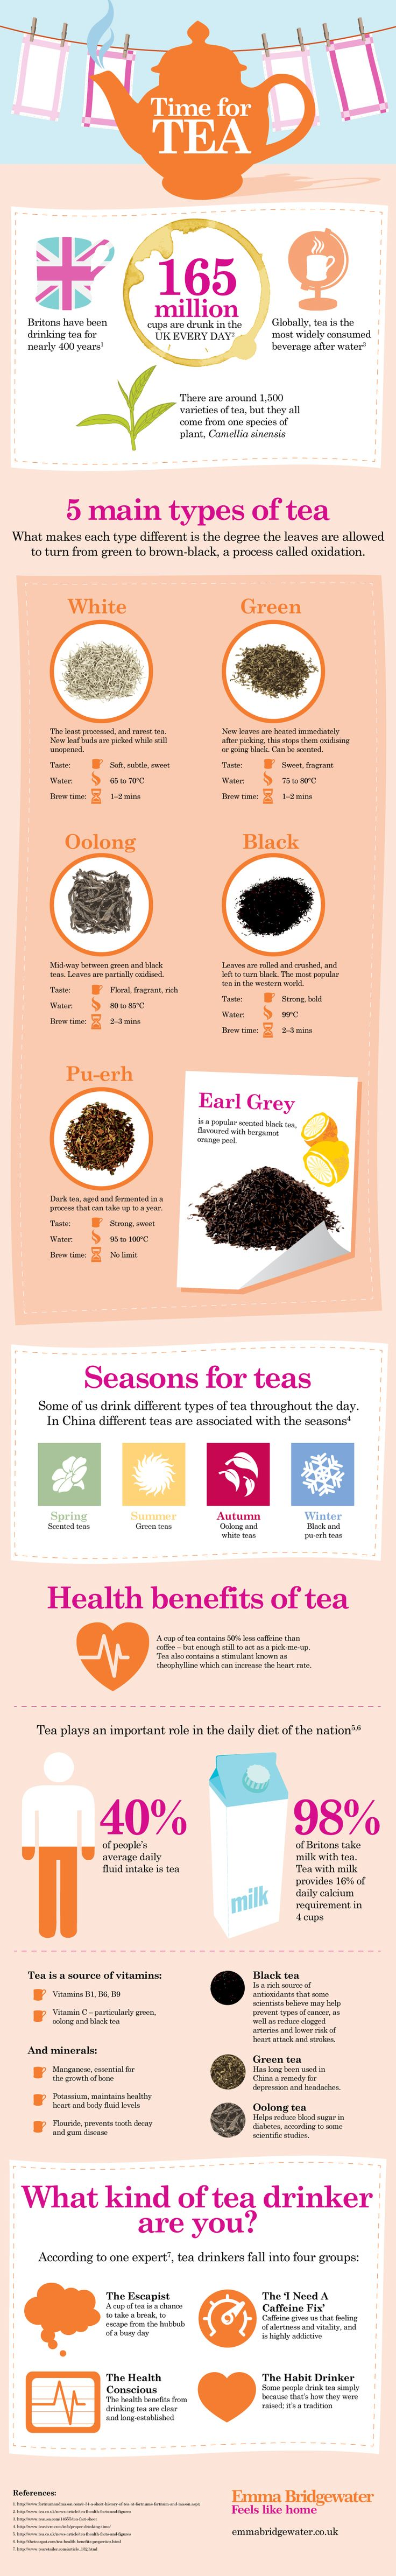 Have you had your morning cuppa? Here's a good tea infographic from @Fine Dining Lovers - interesting to read about the seasonality of each variety.